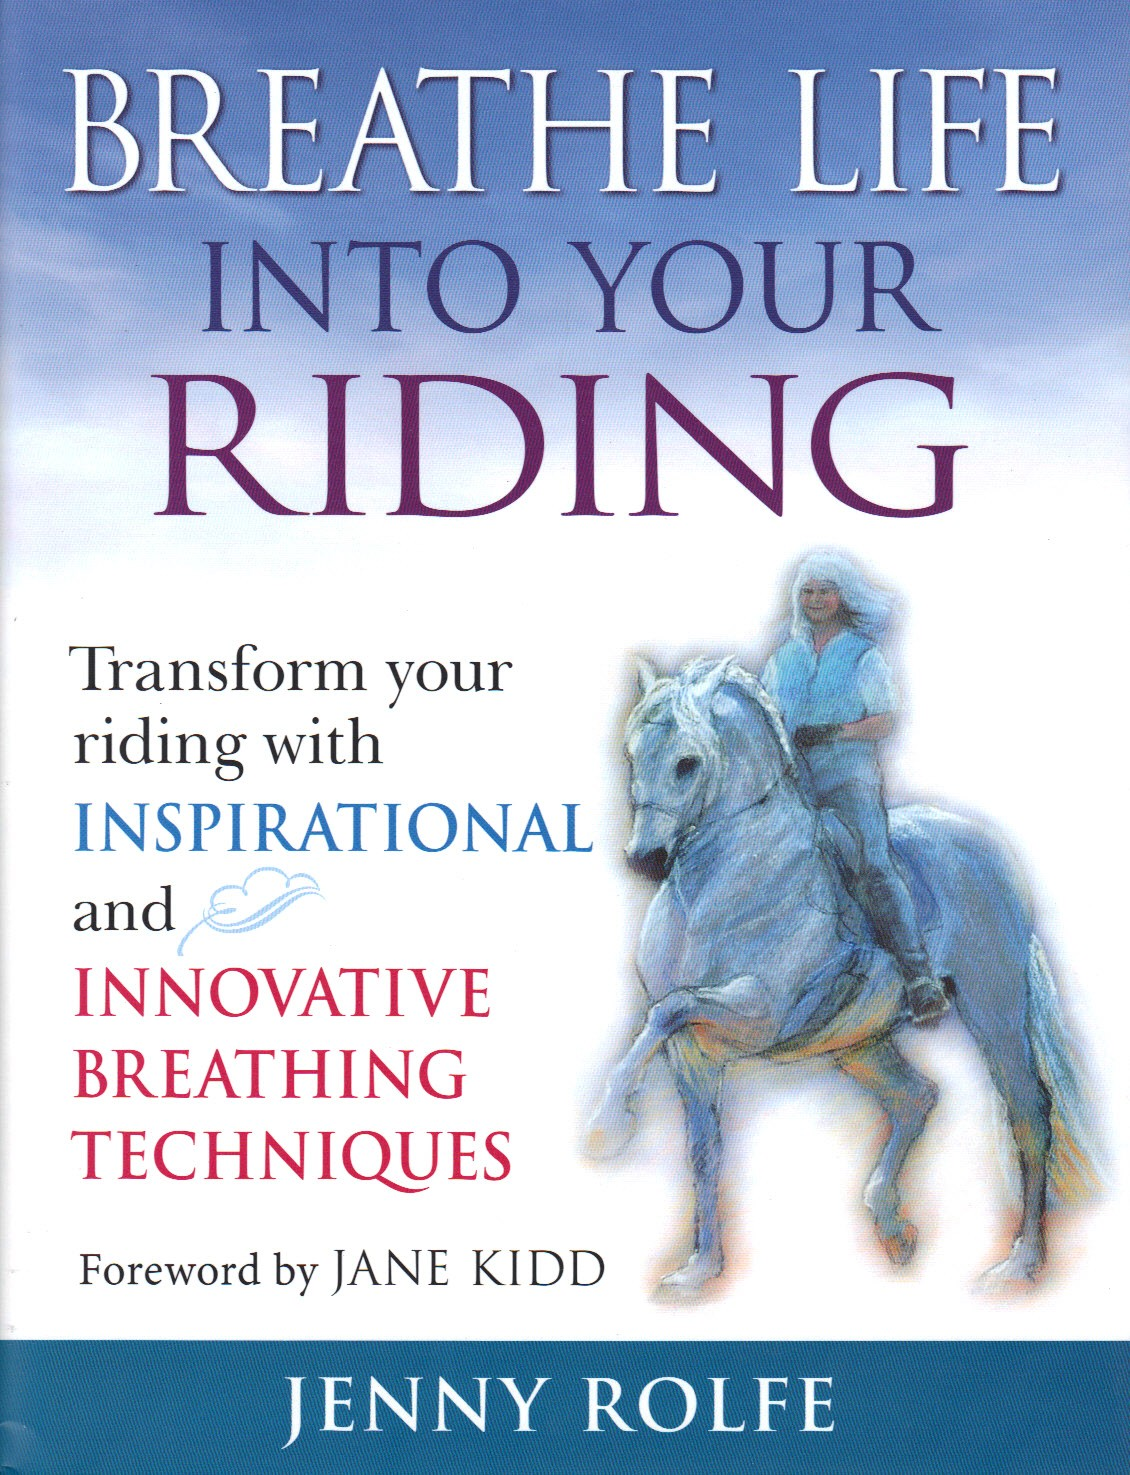 Breathe Life into Your Riding by Jenny Rolfe from trot-online